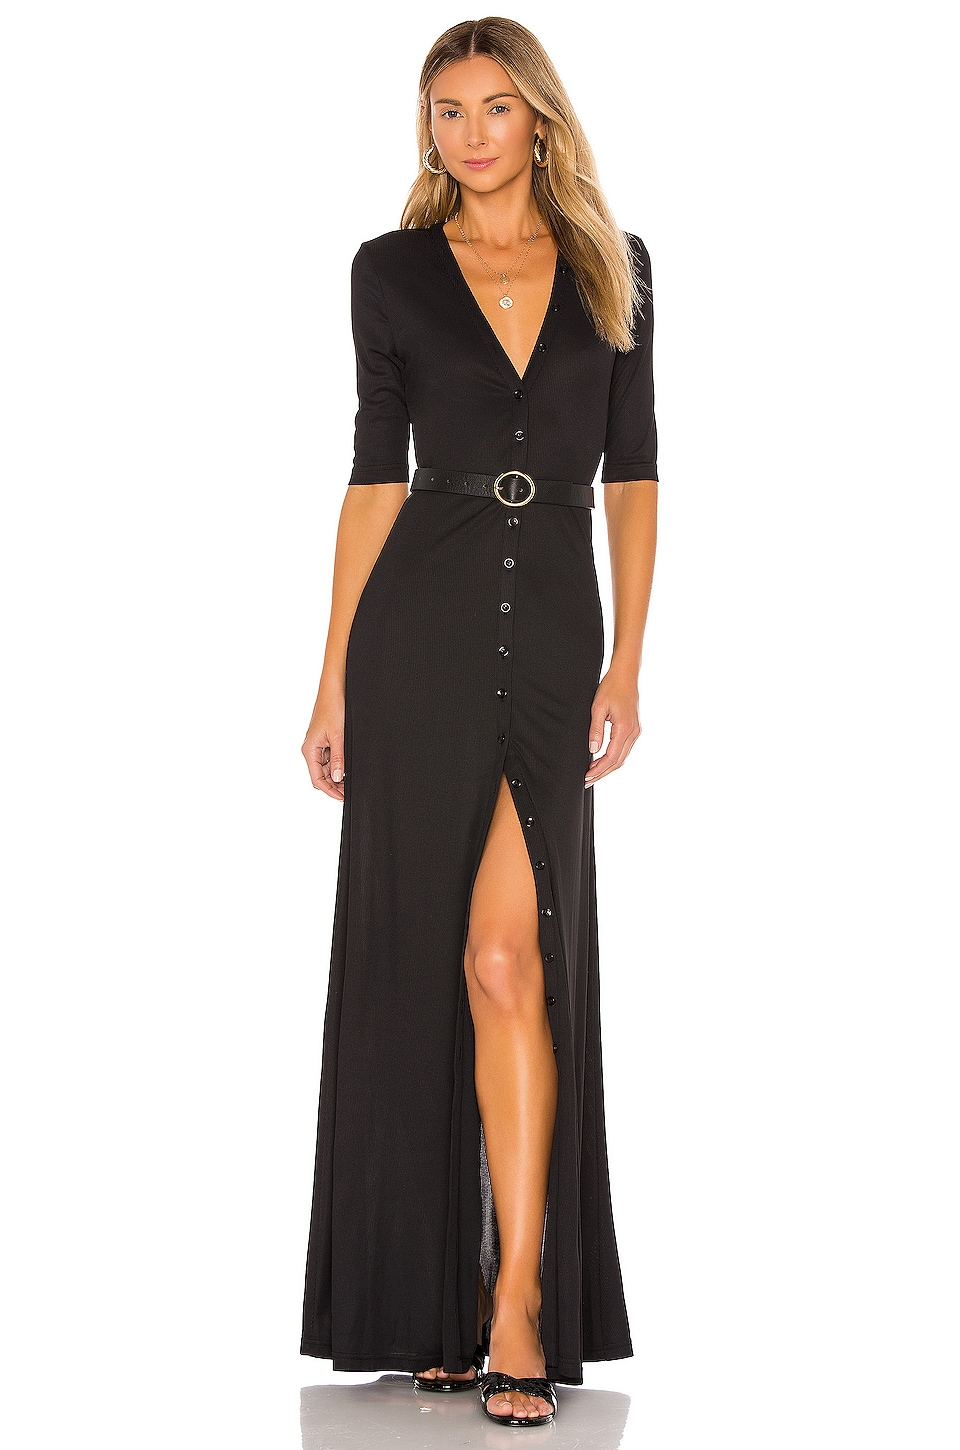 The Esperanza Maxi Dress             L'Academie                                                                                                       CA$ 226.98 17